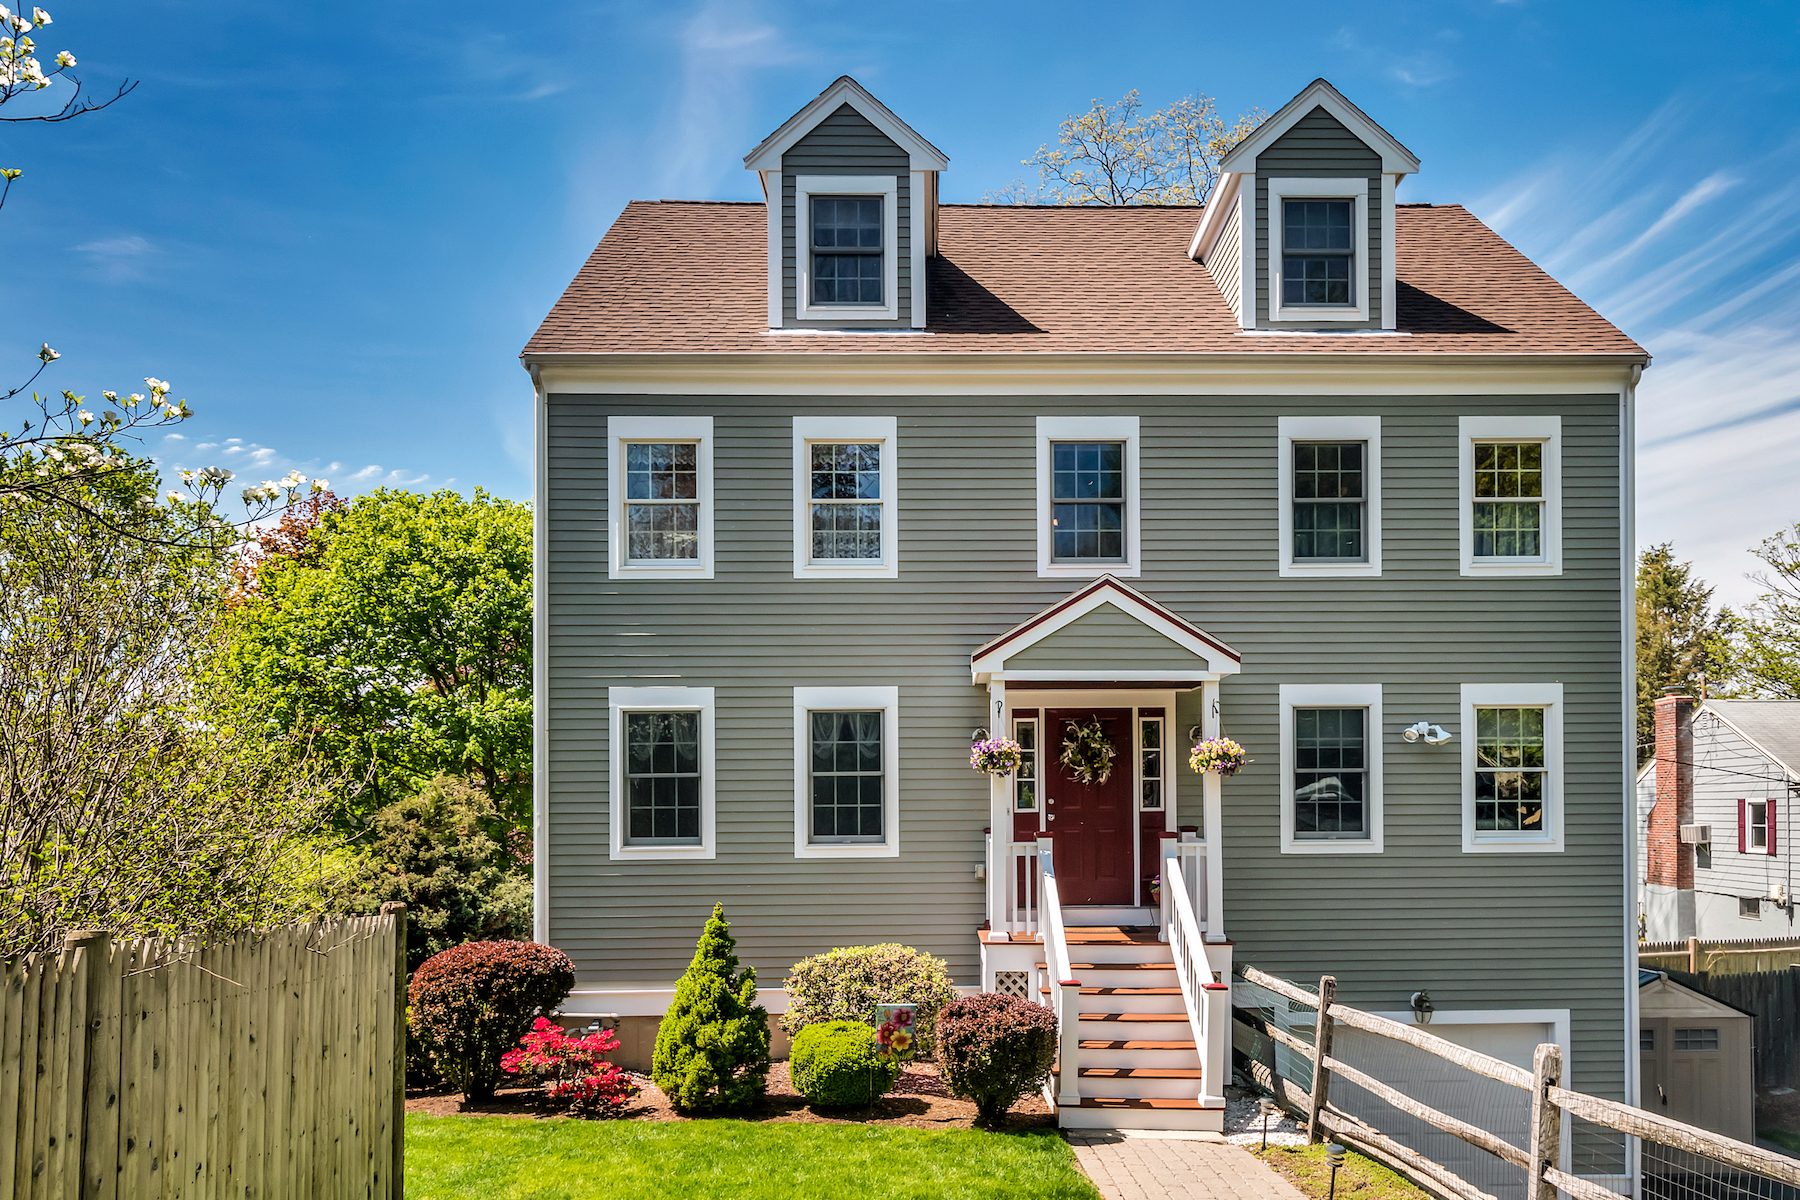 Single Family Home for Sale at Lovely center entrance Colonial 166 Forest Street Winchester, Massachusetts 01890 United States